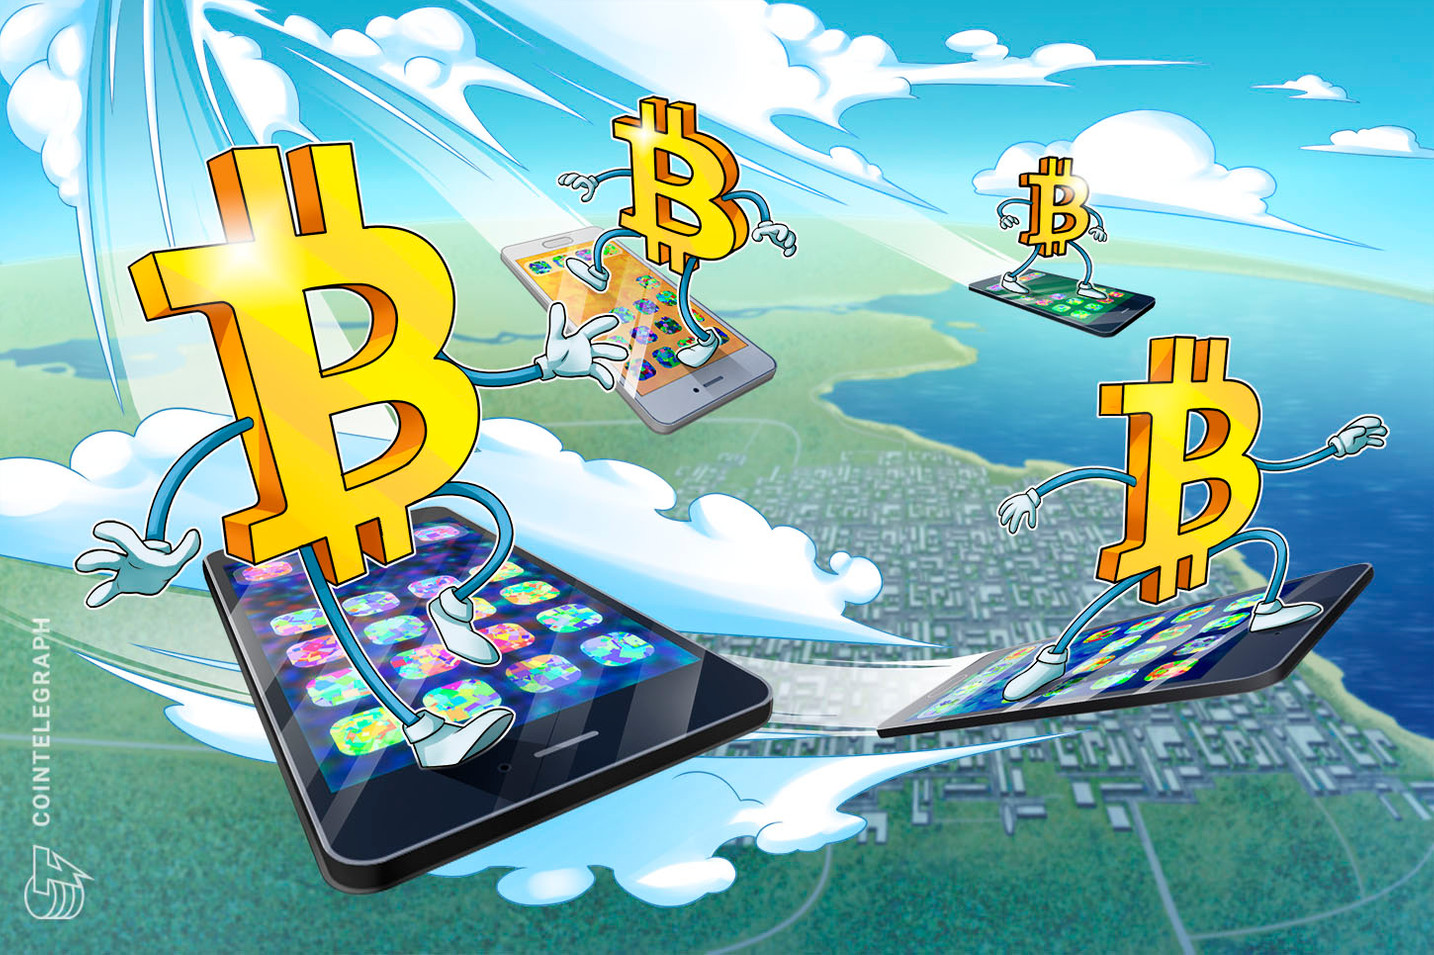 AXA is the first Swiss insurance company to offer Bitcoin payments